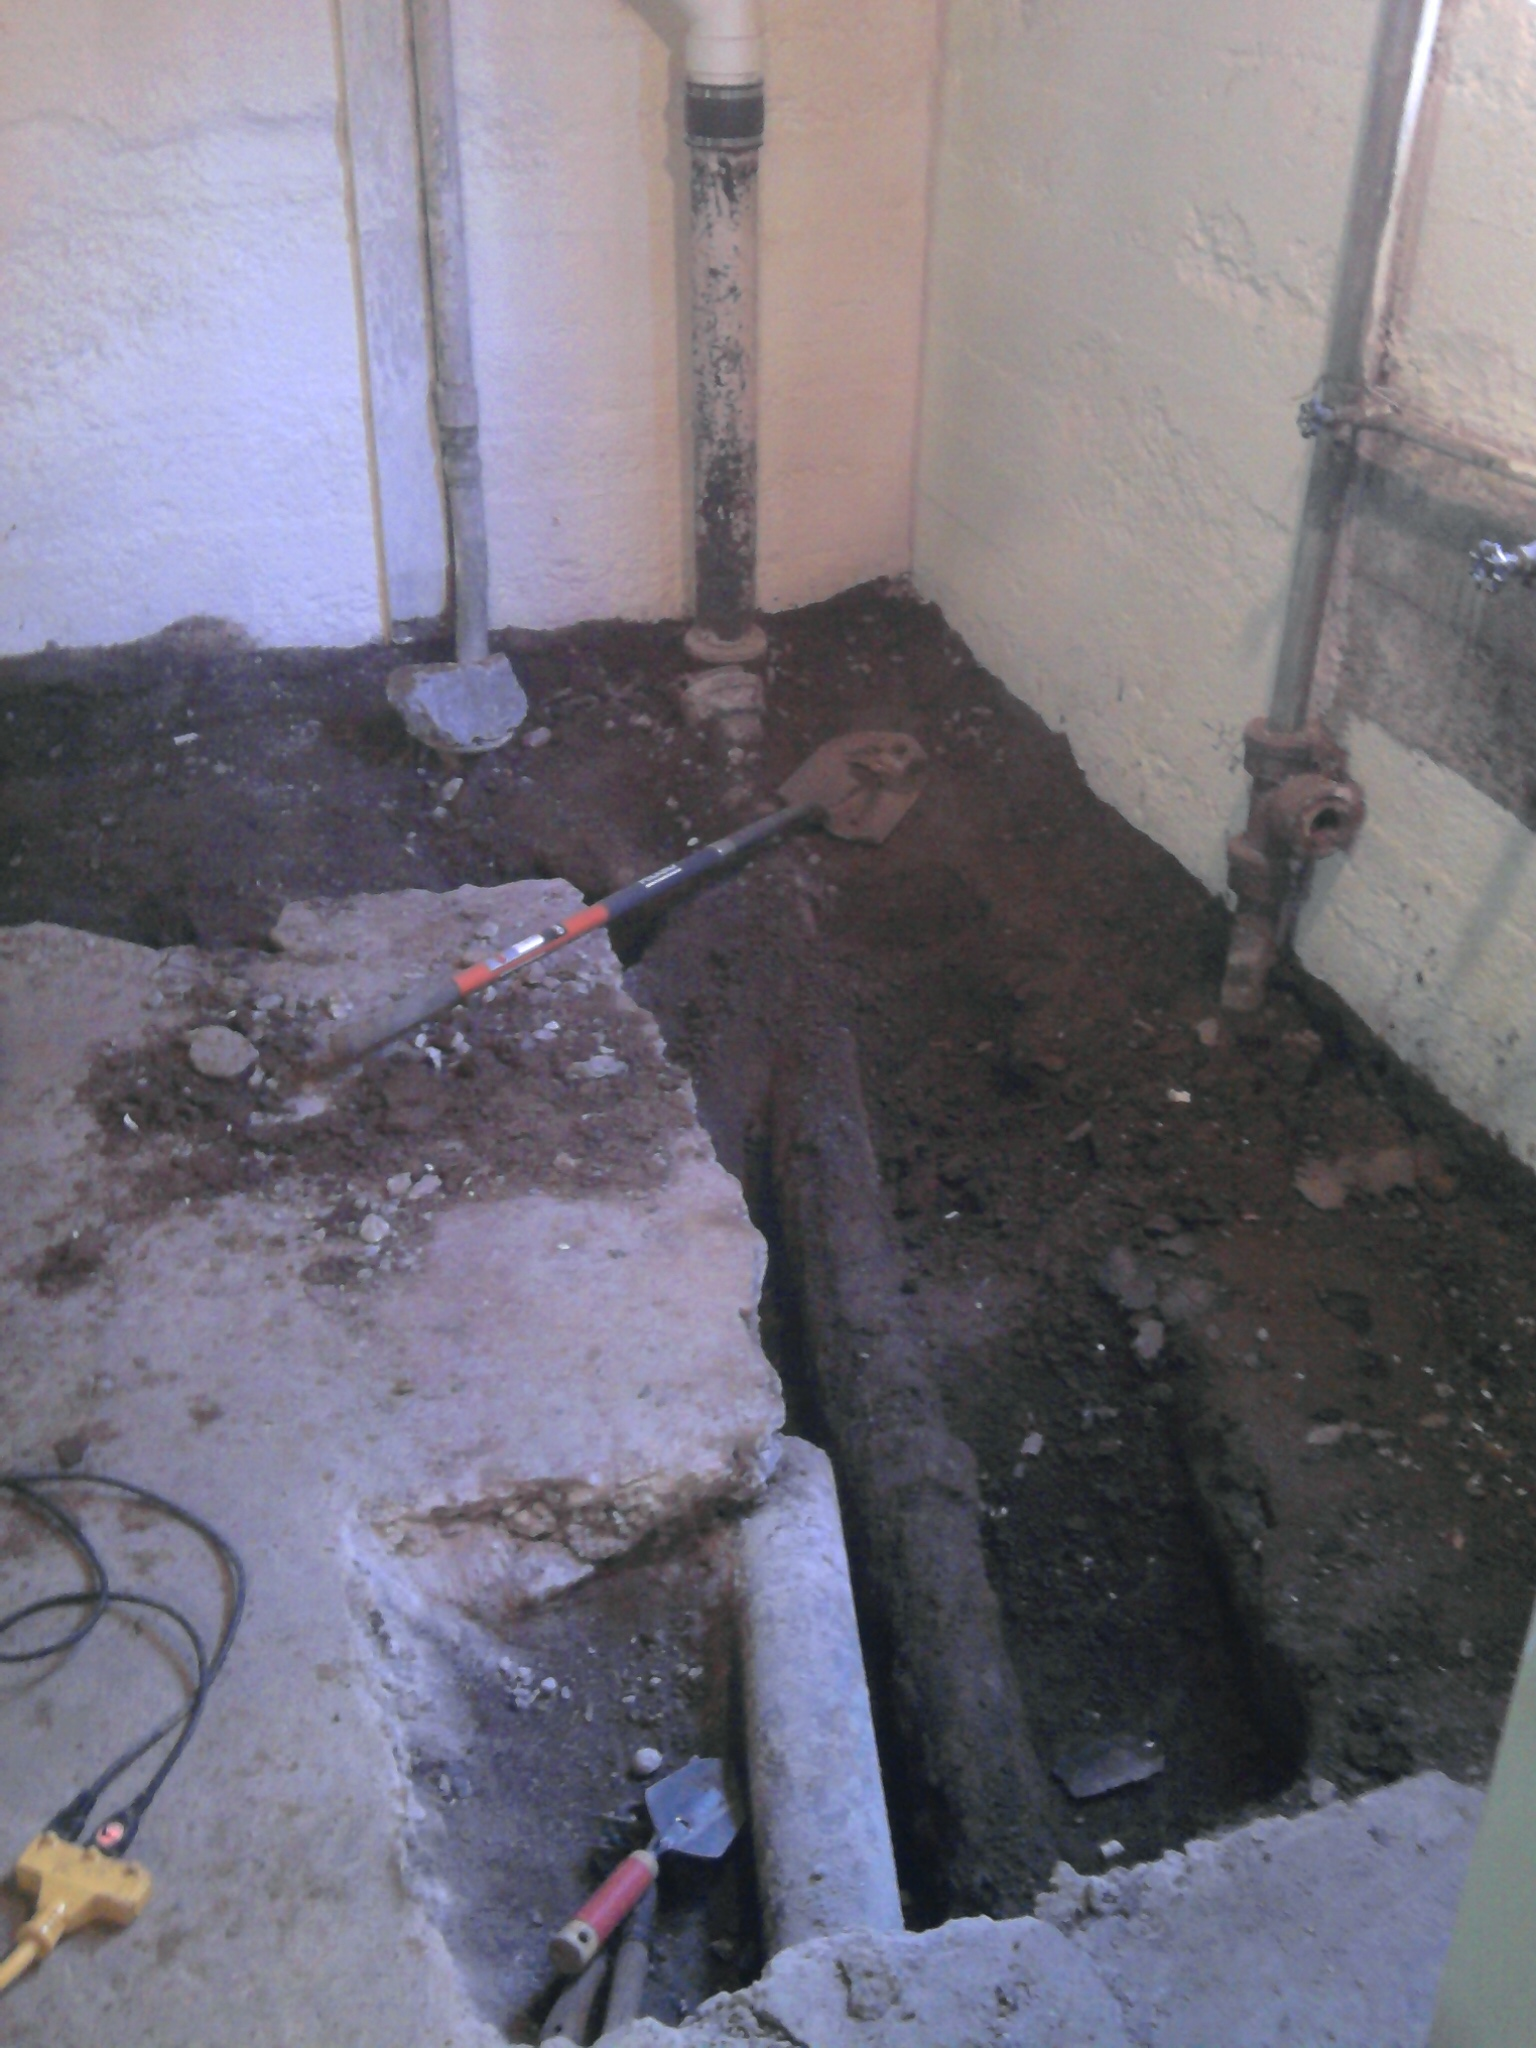 Basement bathrooms-R-us. - Old School Renovations, Inc.